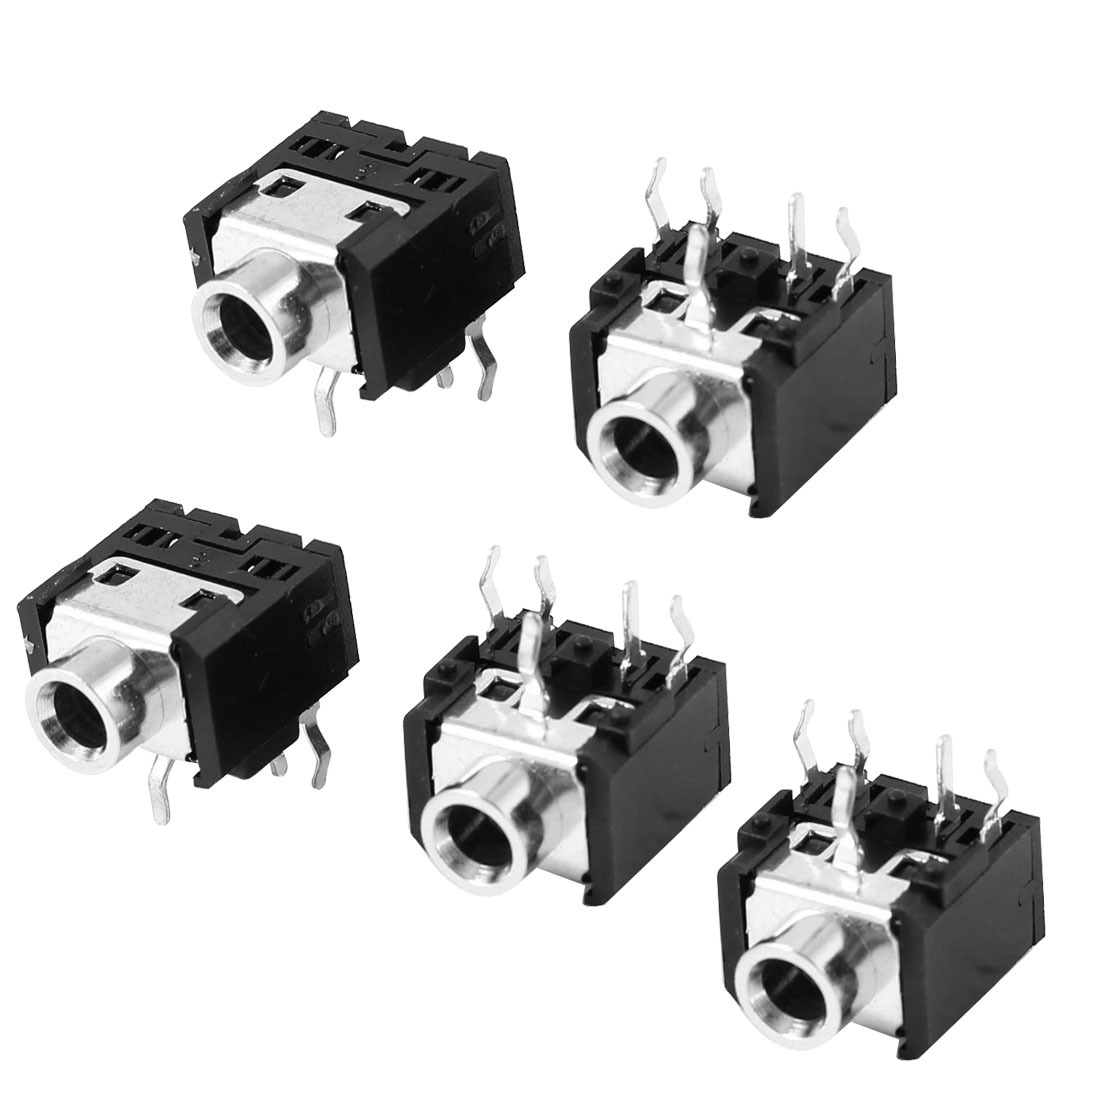 5 Pcs Black 5 Pin 3.5mm x 1.3mm DC SMD Power Jack Socket PCB Mount Connector DC031A